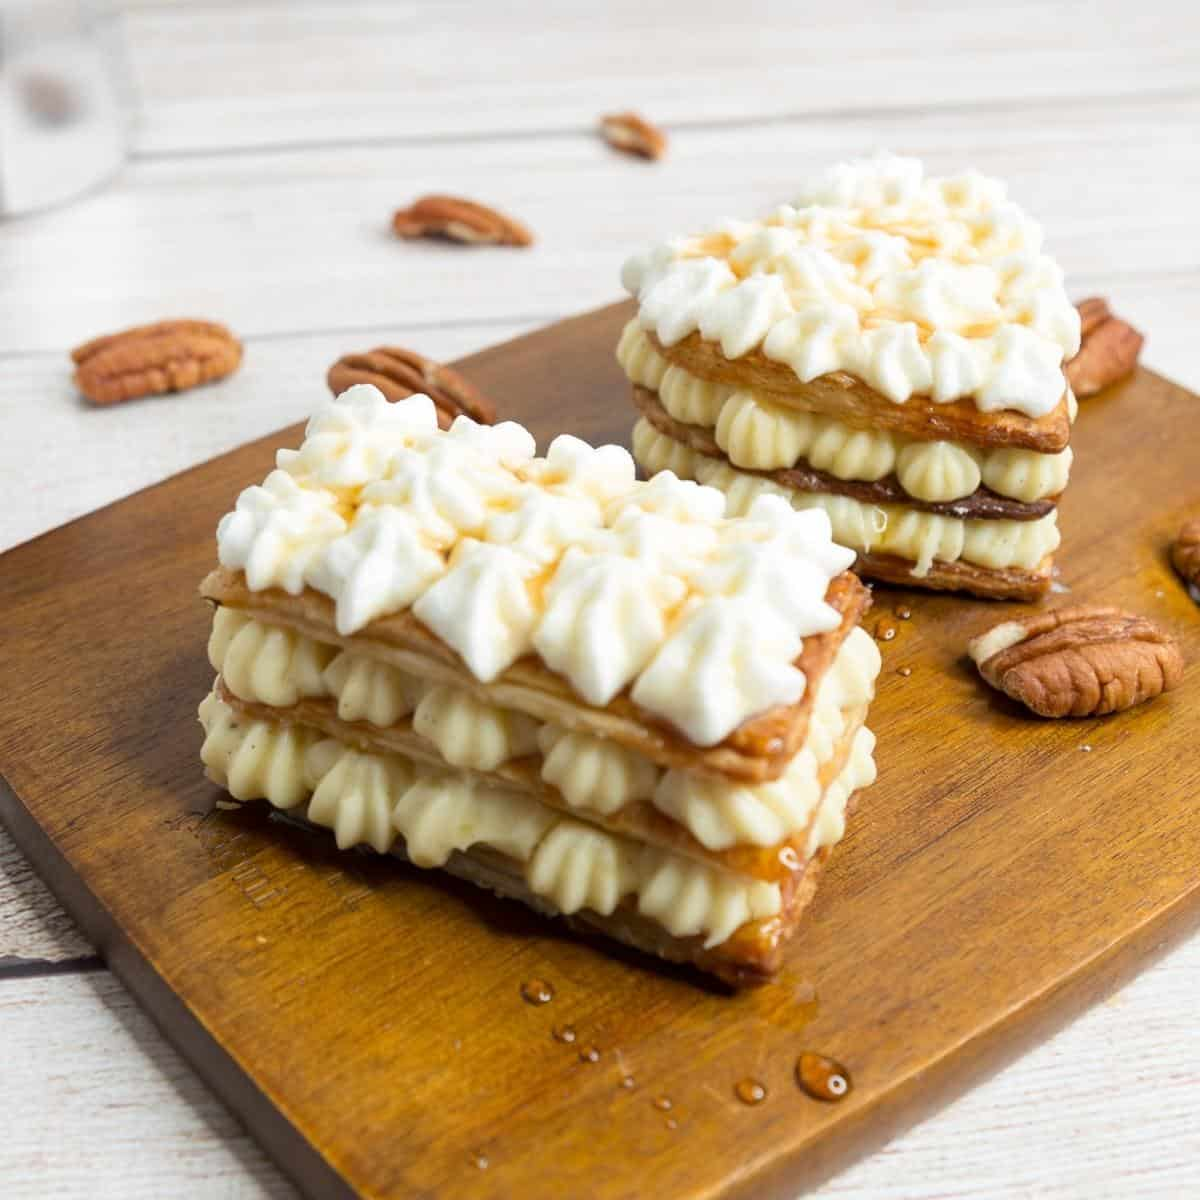 Two Mille Feuille on a wooden board